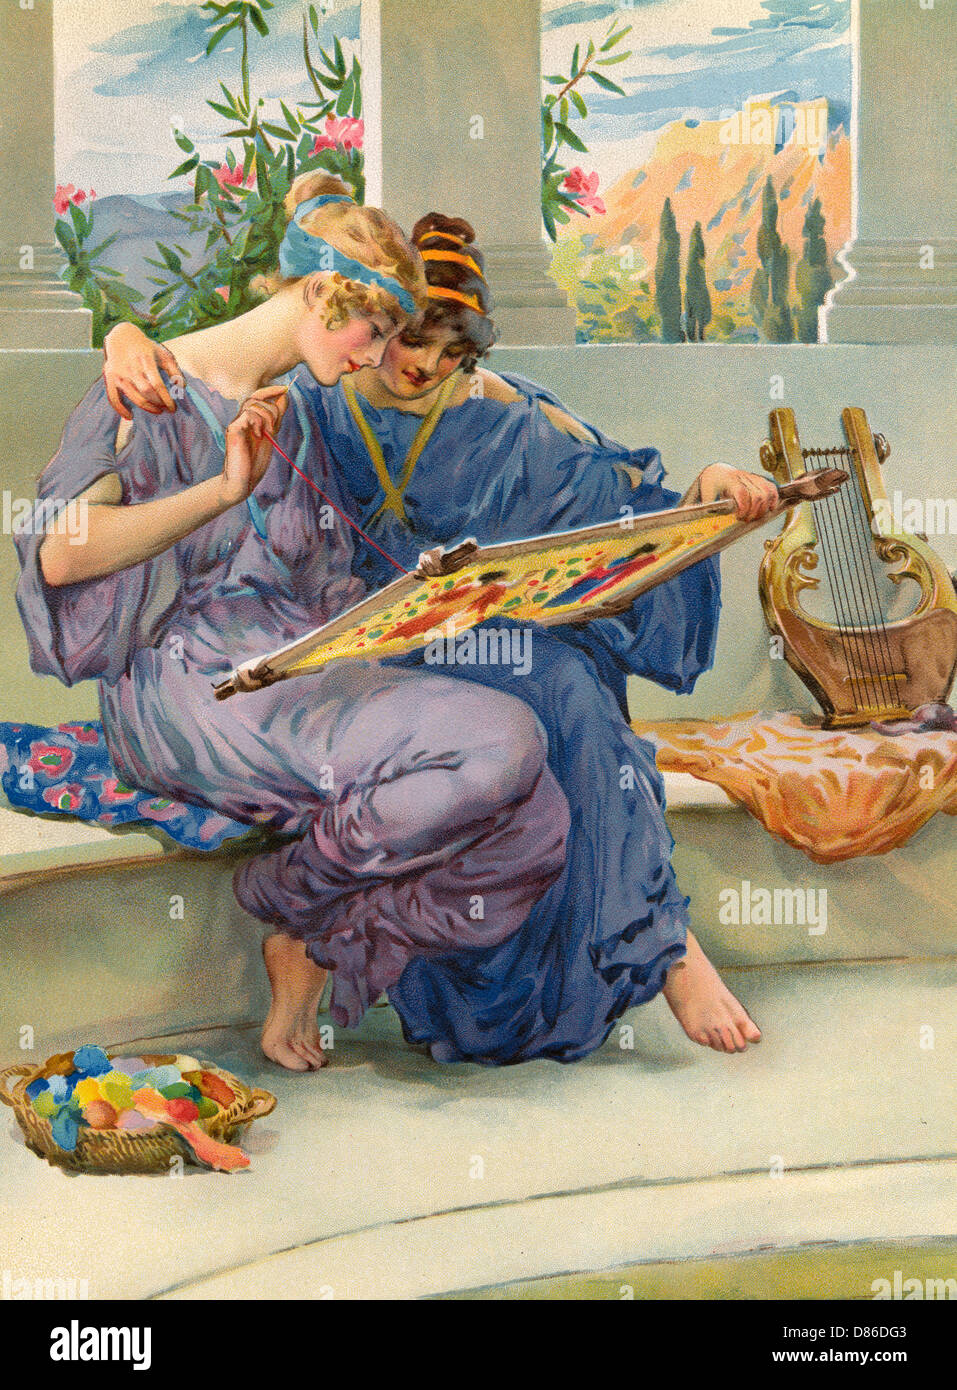 a history of womens rights in ancient greece Male and female bodies according to ancient greek physicians  jean-baptiste  bonnard teaches greek history at the university of caen in normandy  fast  and slow, strong and weak, right and left (parmenides), which are given positive  or.